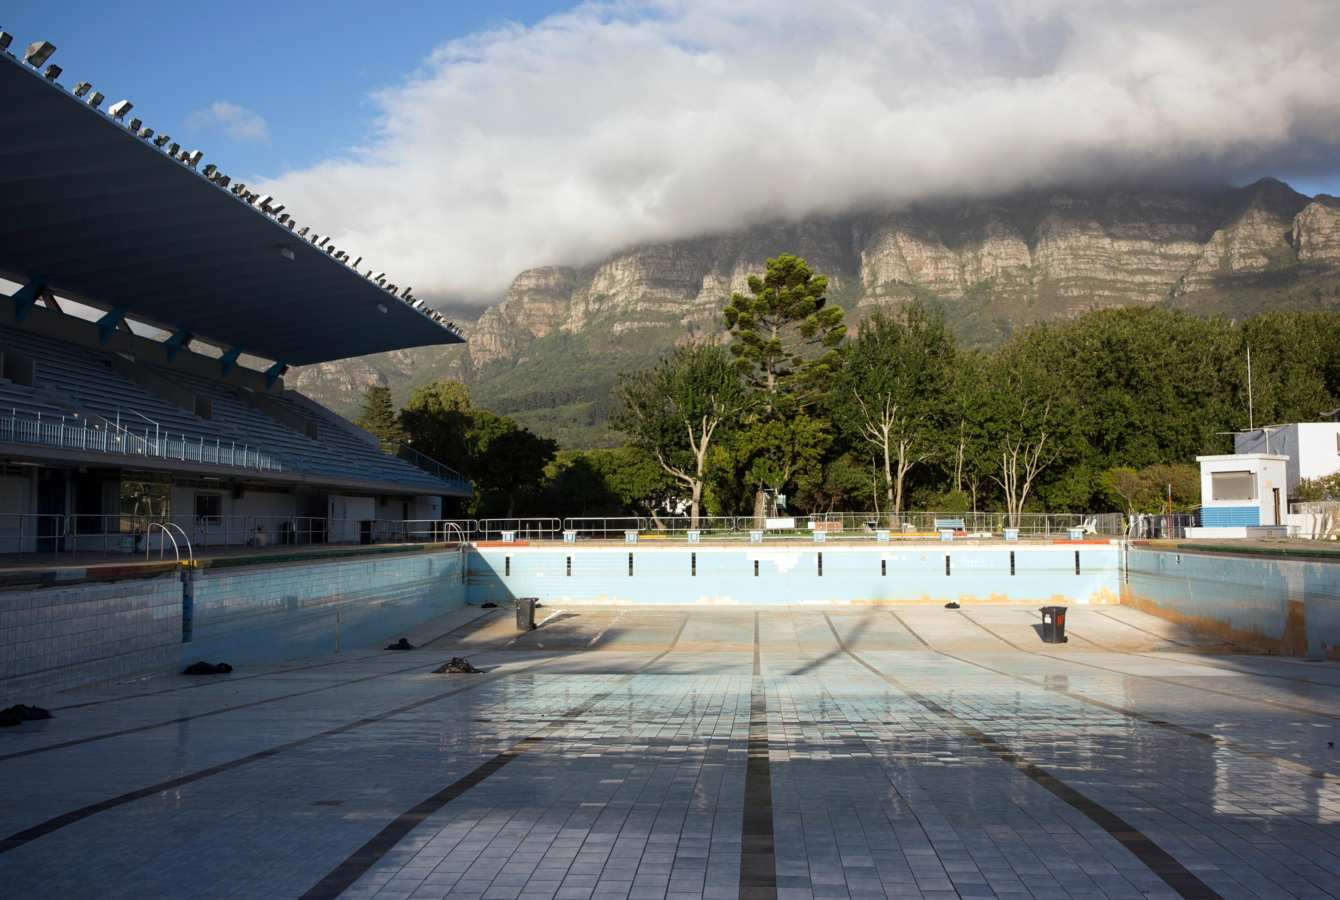 What Travelers Should Know About Cape Town's Water Crisis